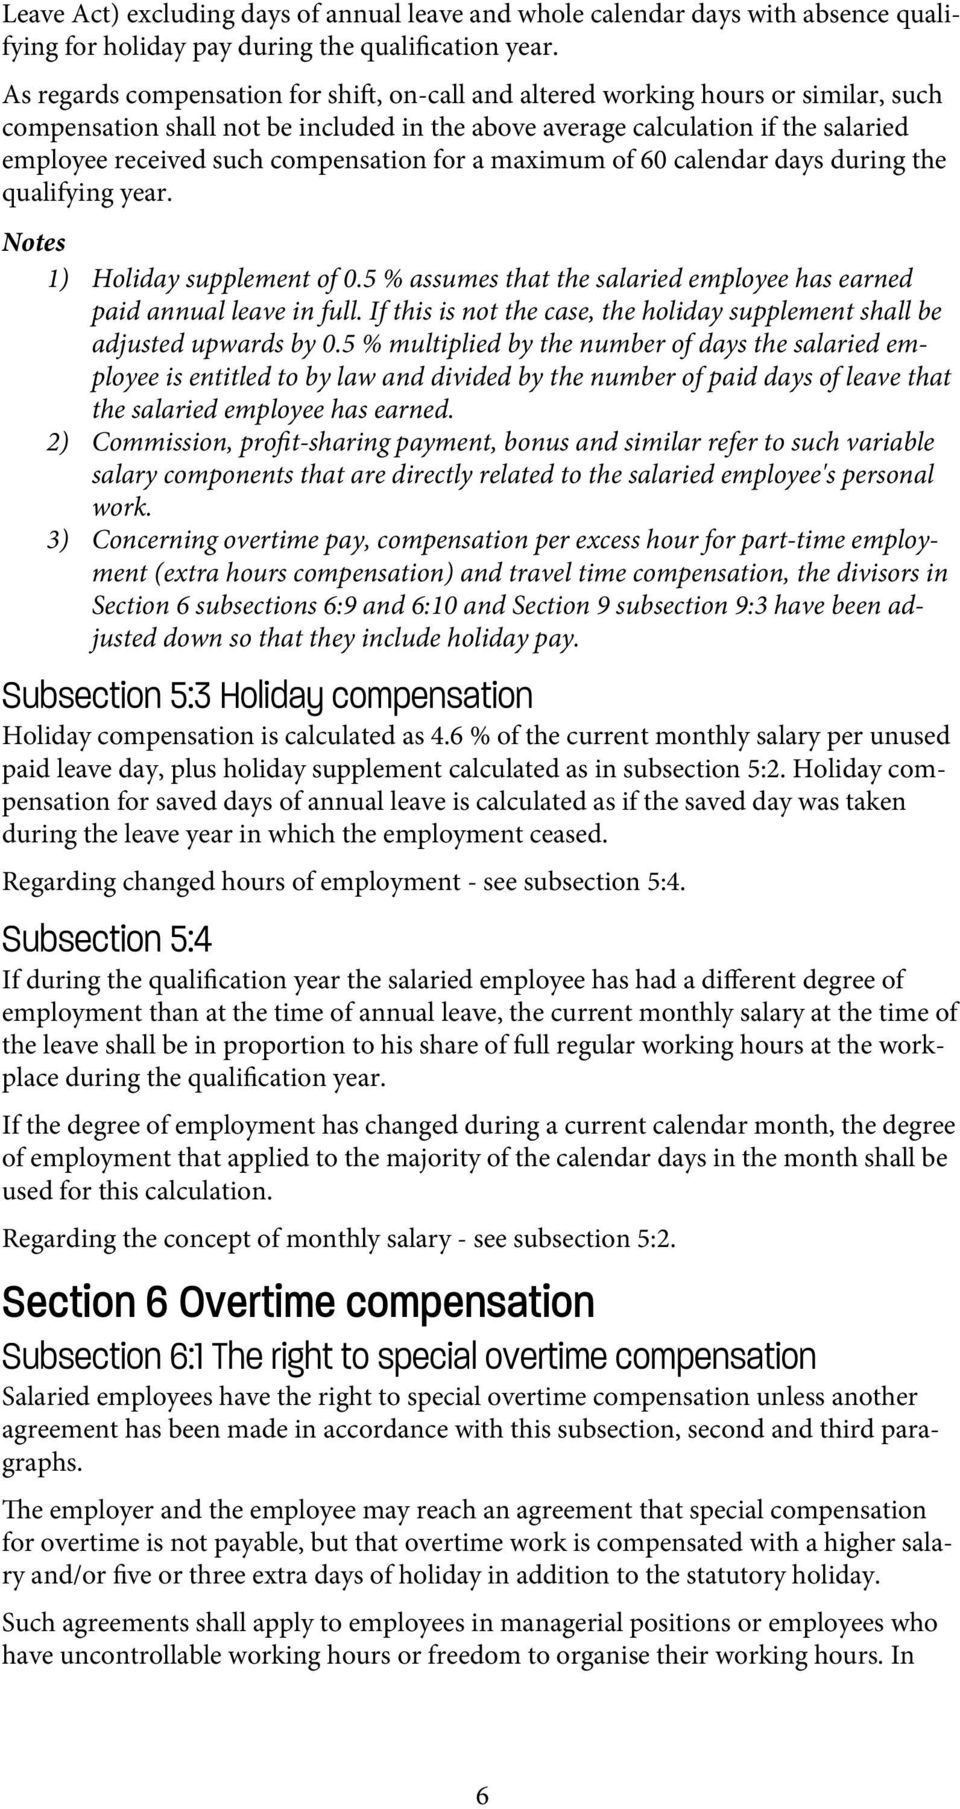 compensation for a maximum of 60 calendar days during the qualifying year. Notes 1) Holiday supplement of 0.5 % assumes that the salaried employee has earned paid annual leave in full.